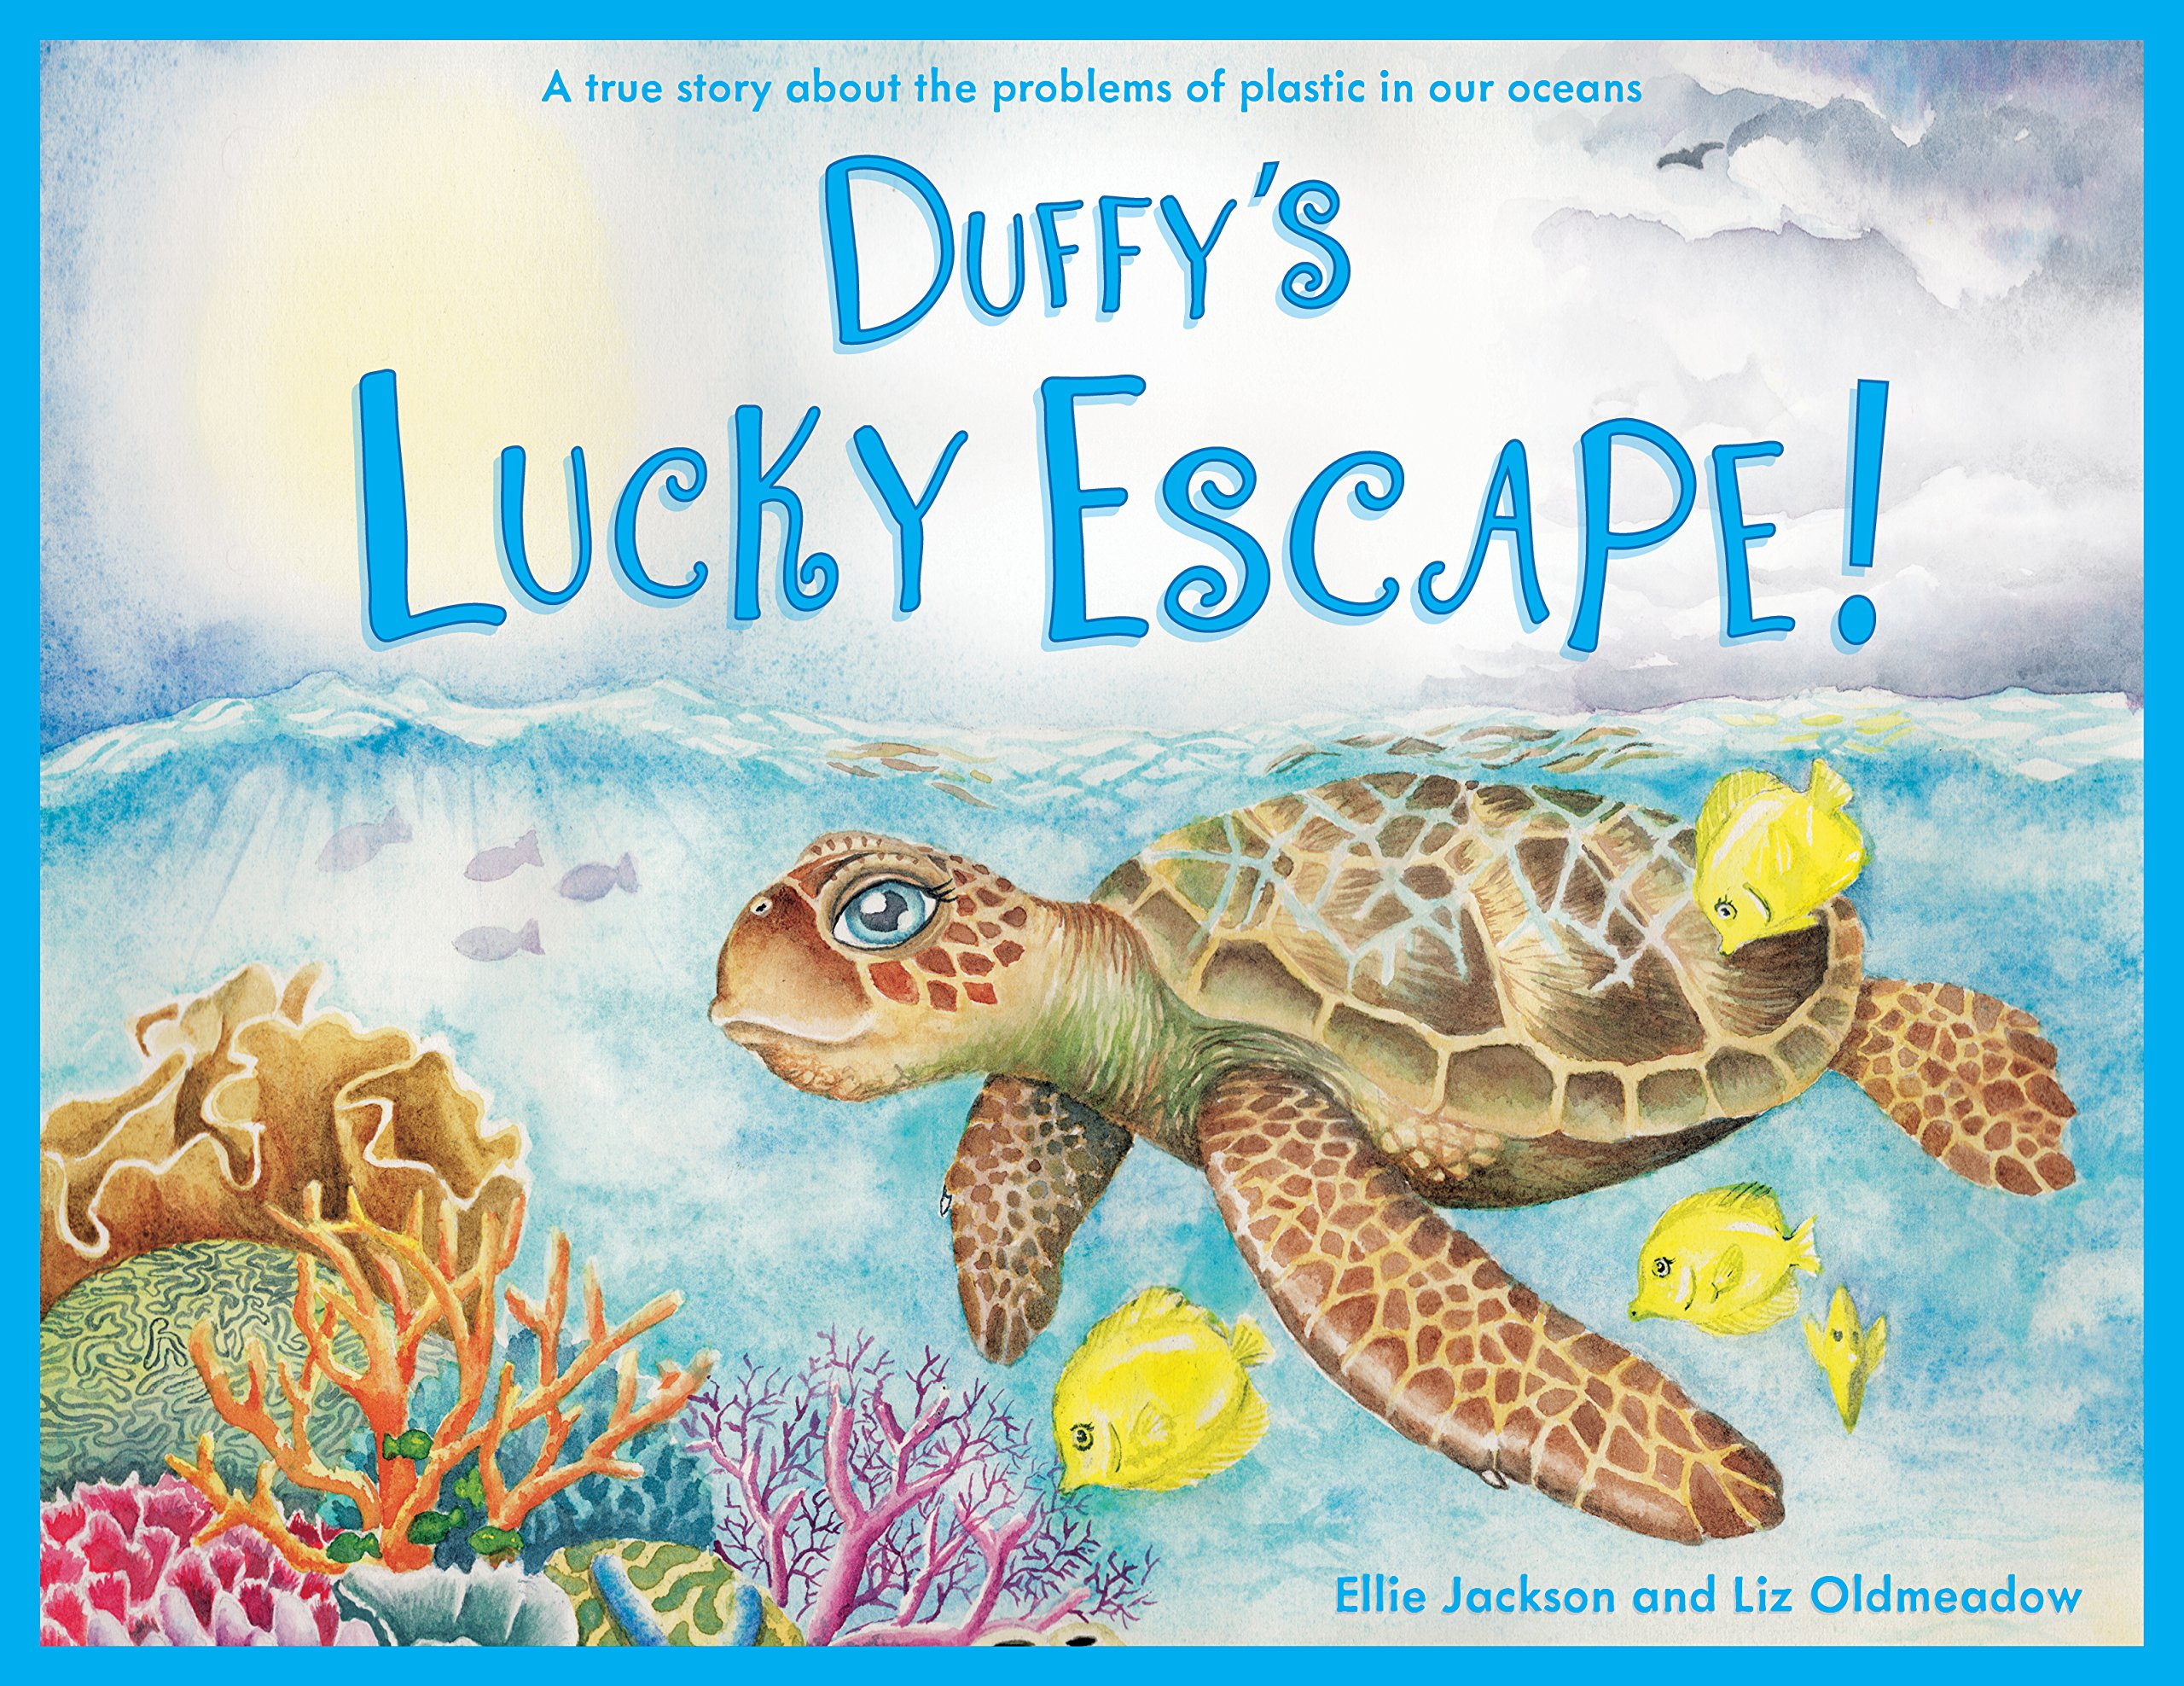 Duffy's Lucky Escape: A True Story About Plastic In Our Oceans: 1 (Wild  Tribe Heroes): Amazon.co.uk: Jackson, Ellie, Oldmeadow, Liz: 9781999748500:  Books